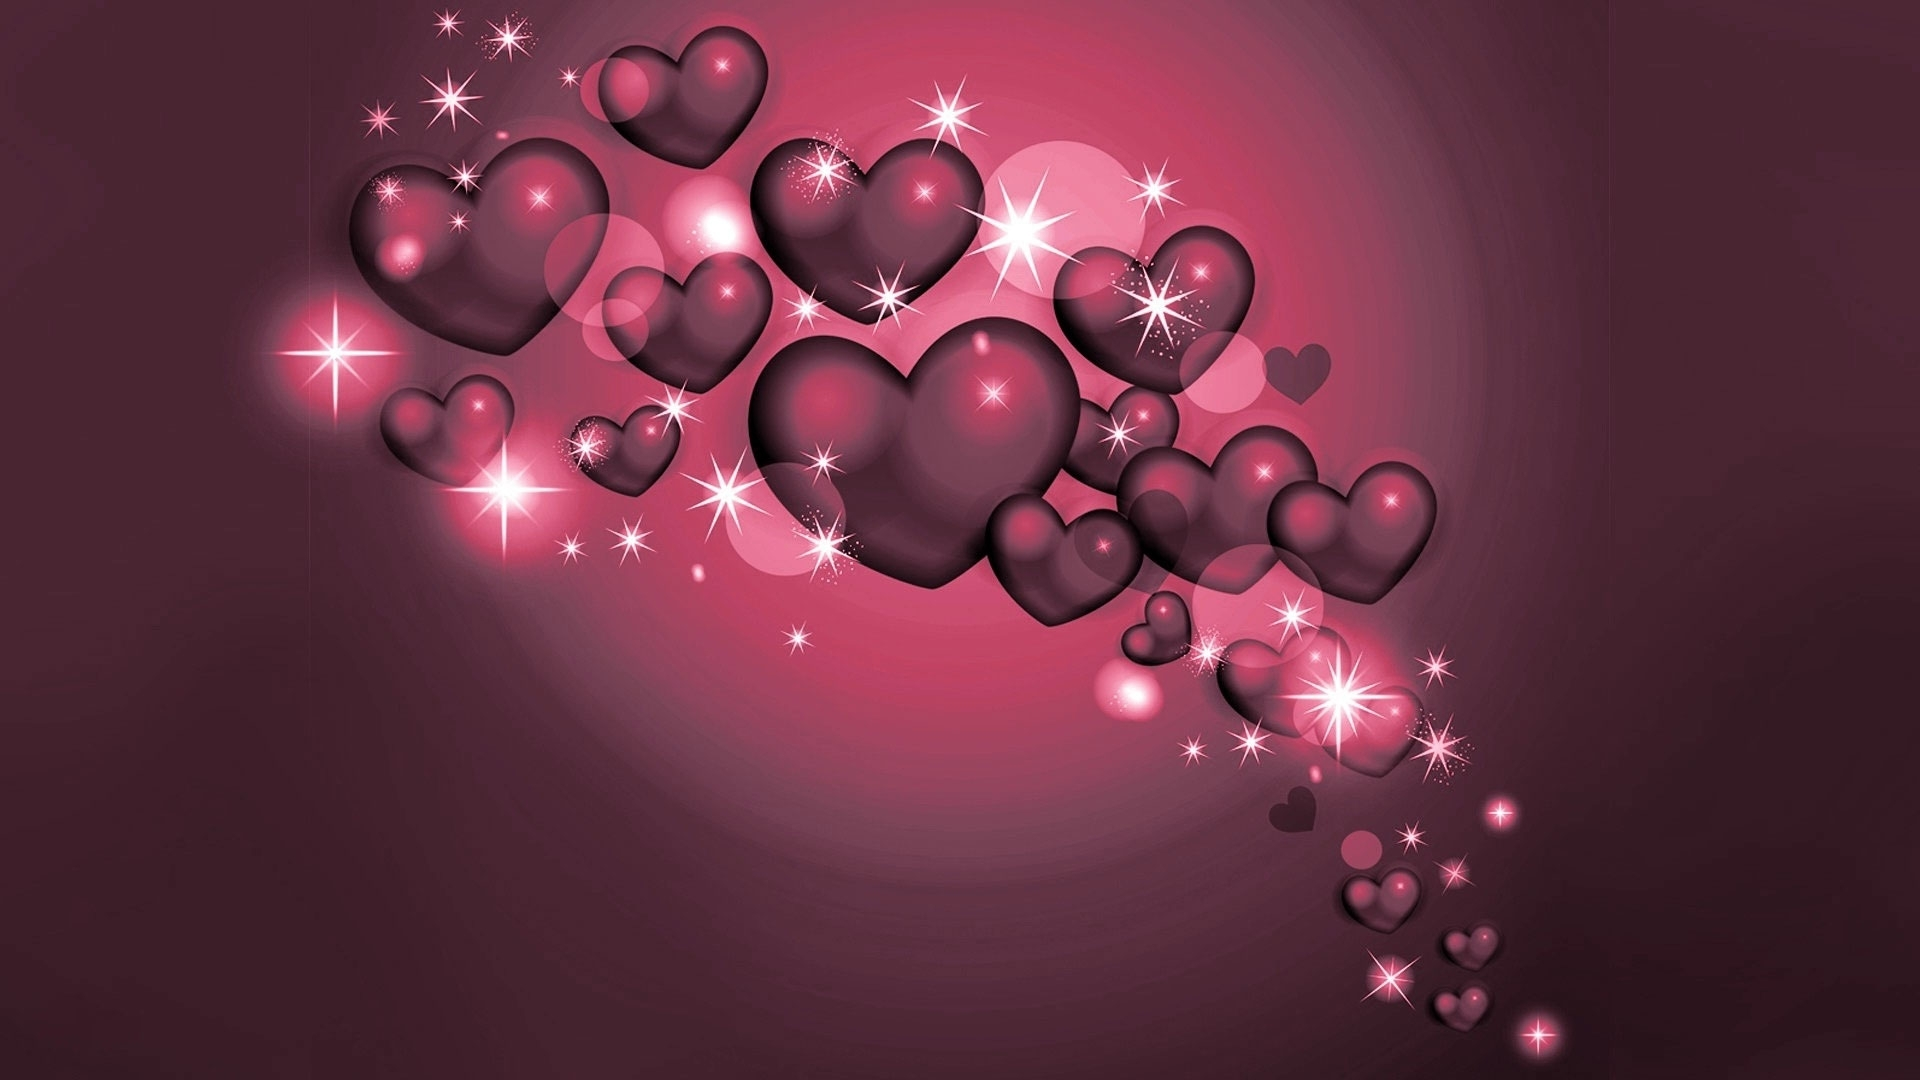 10 top cute love heart wallpapers for mobile full hd 1920×1080 for